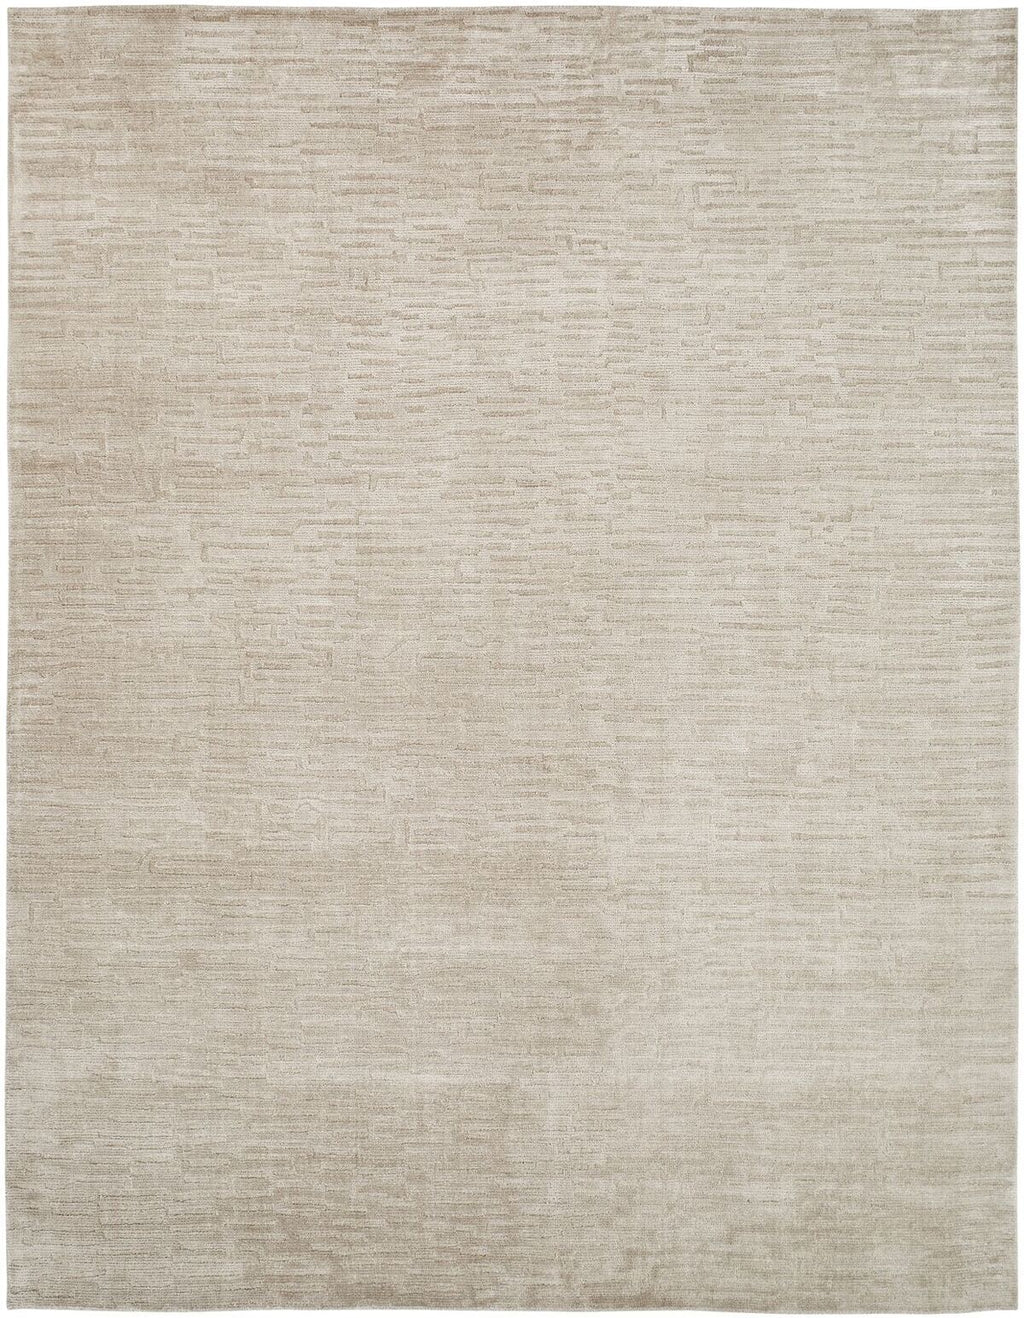 Mirage Linen Hand-Knotted Area Rug - AllRugs